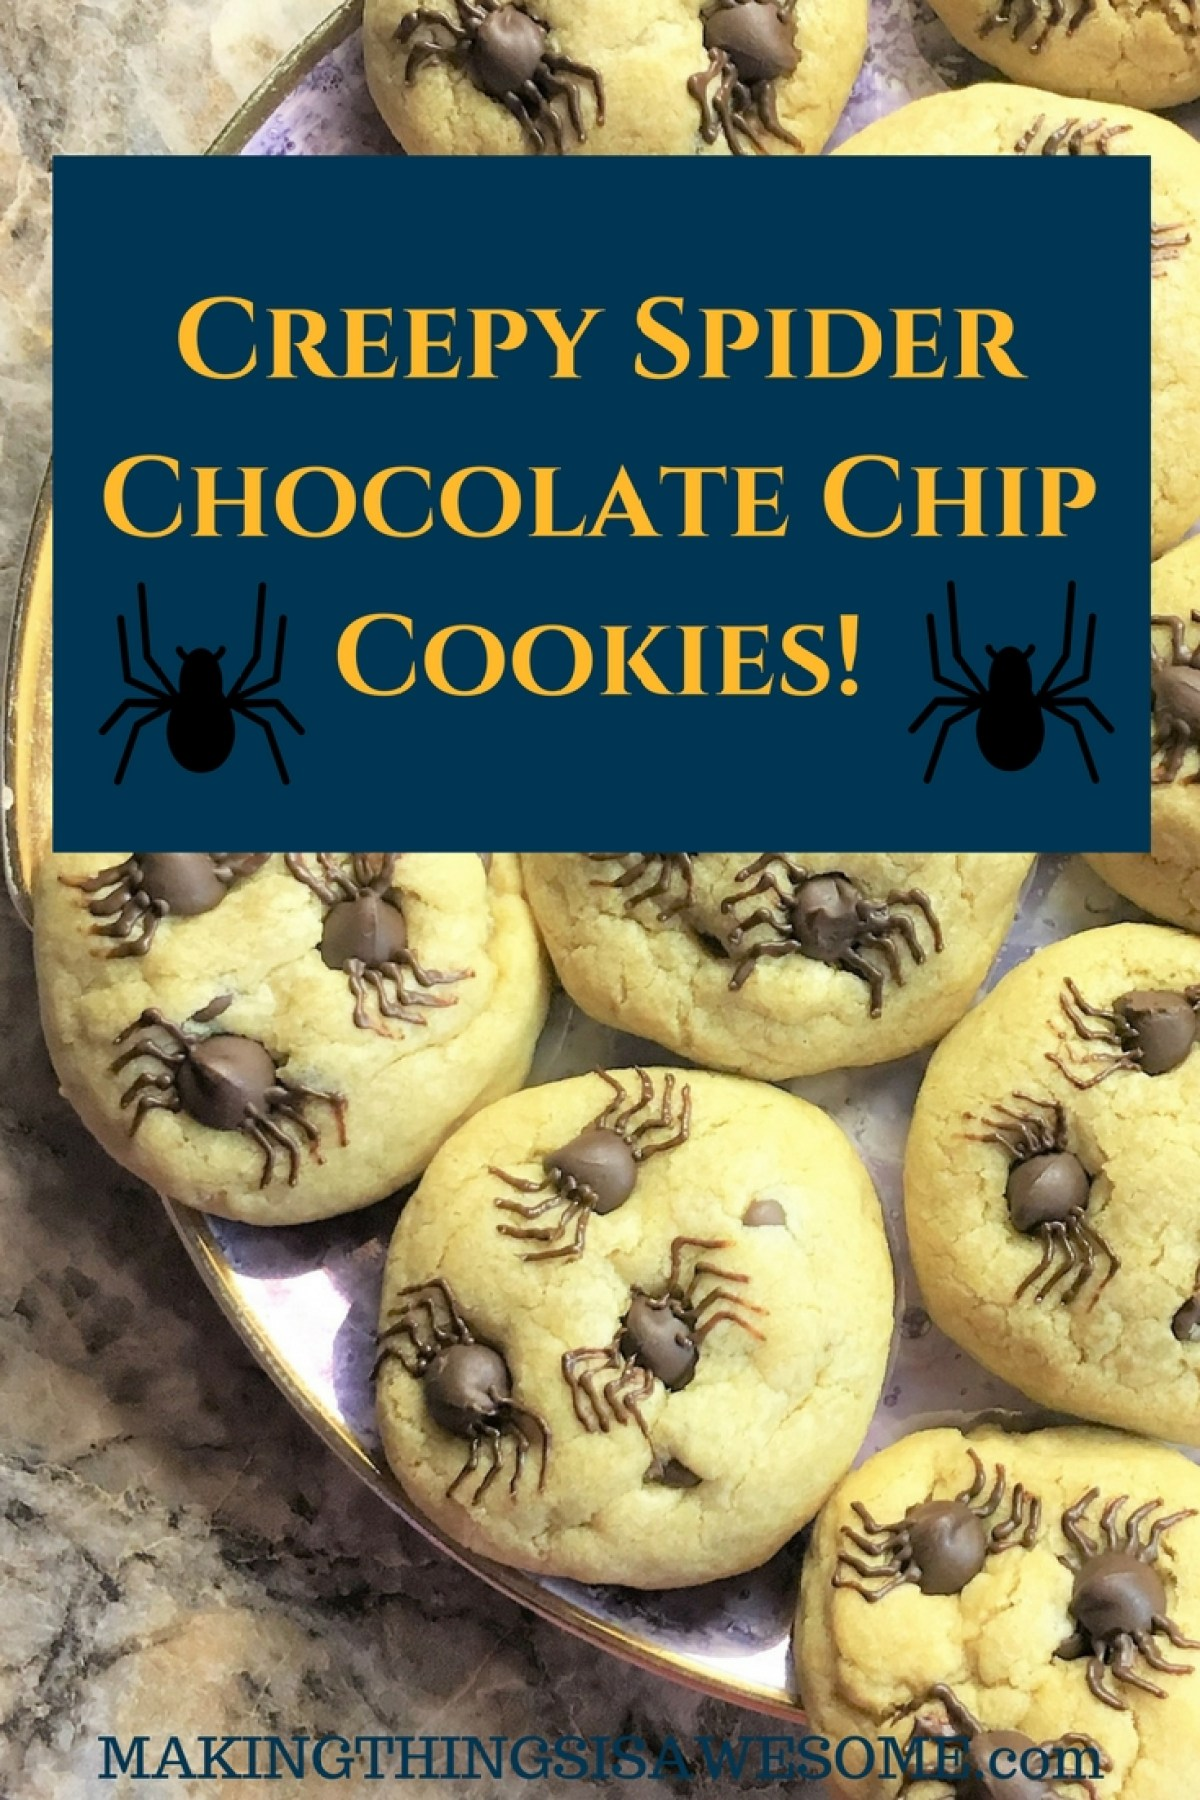 Creepy Spider Chocolate Chip Cookies!